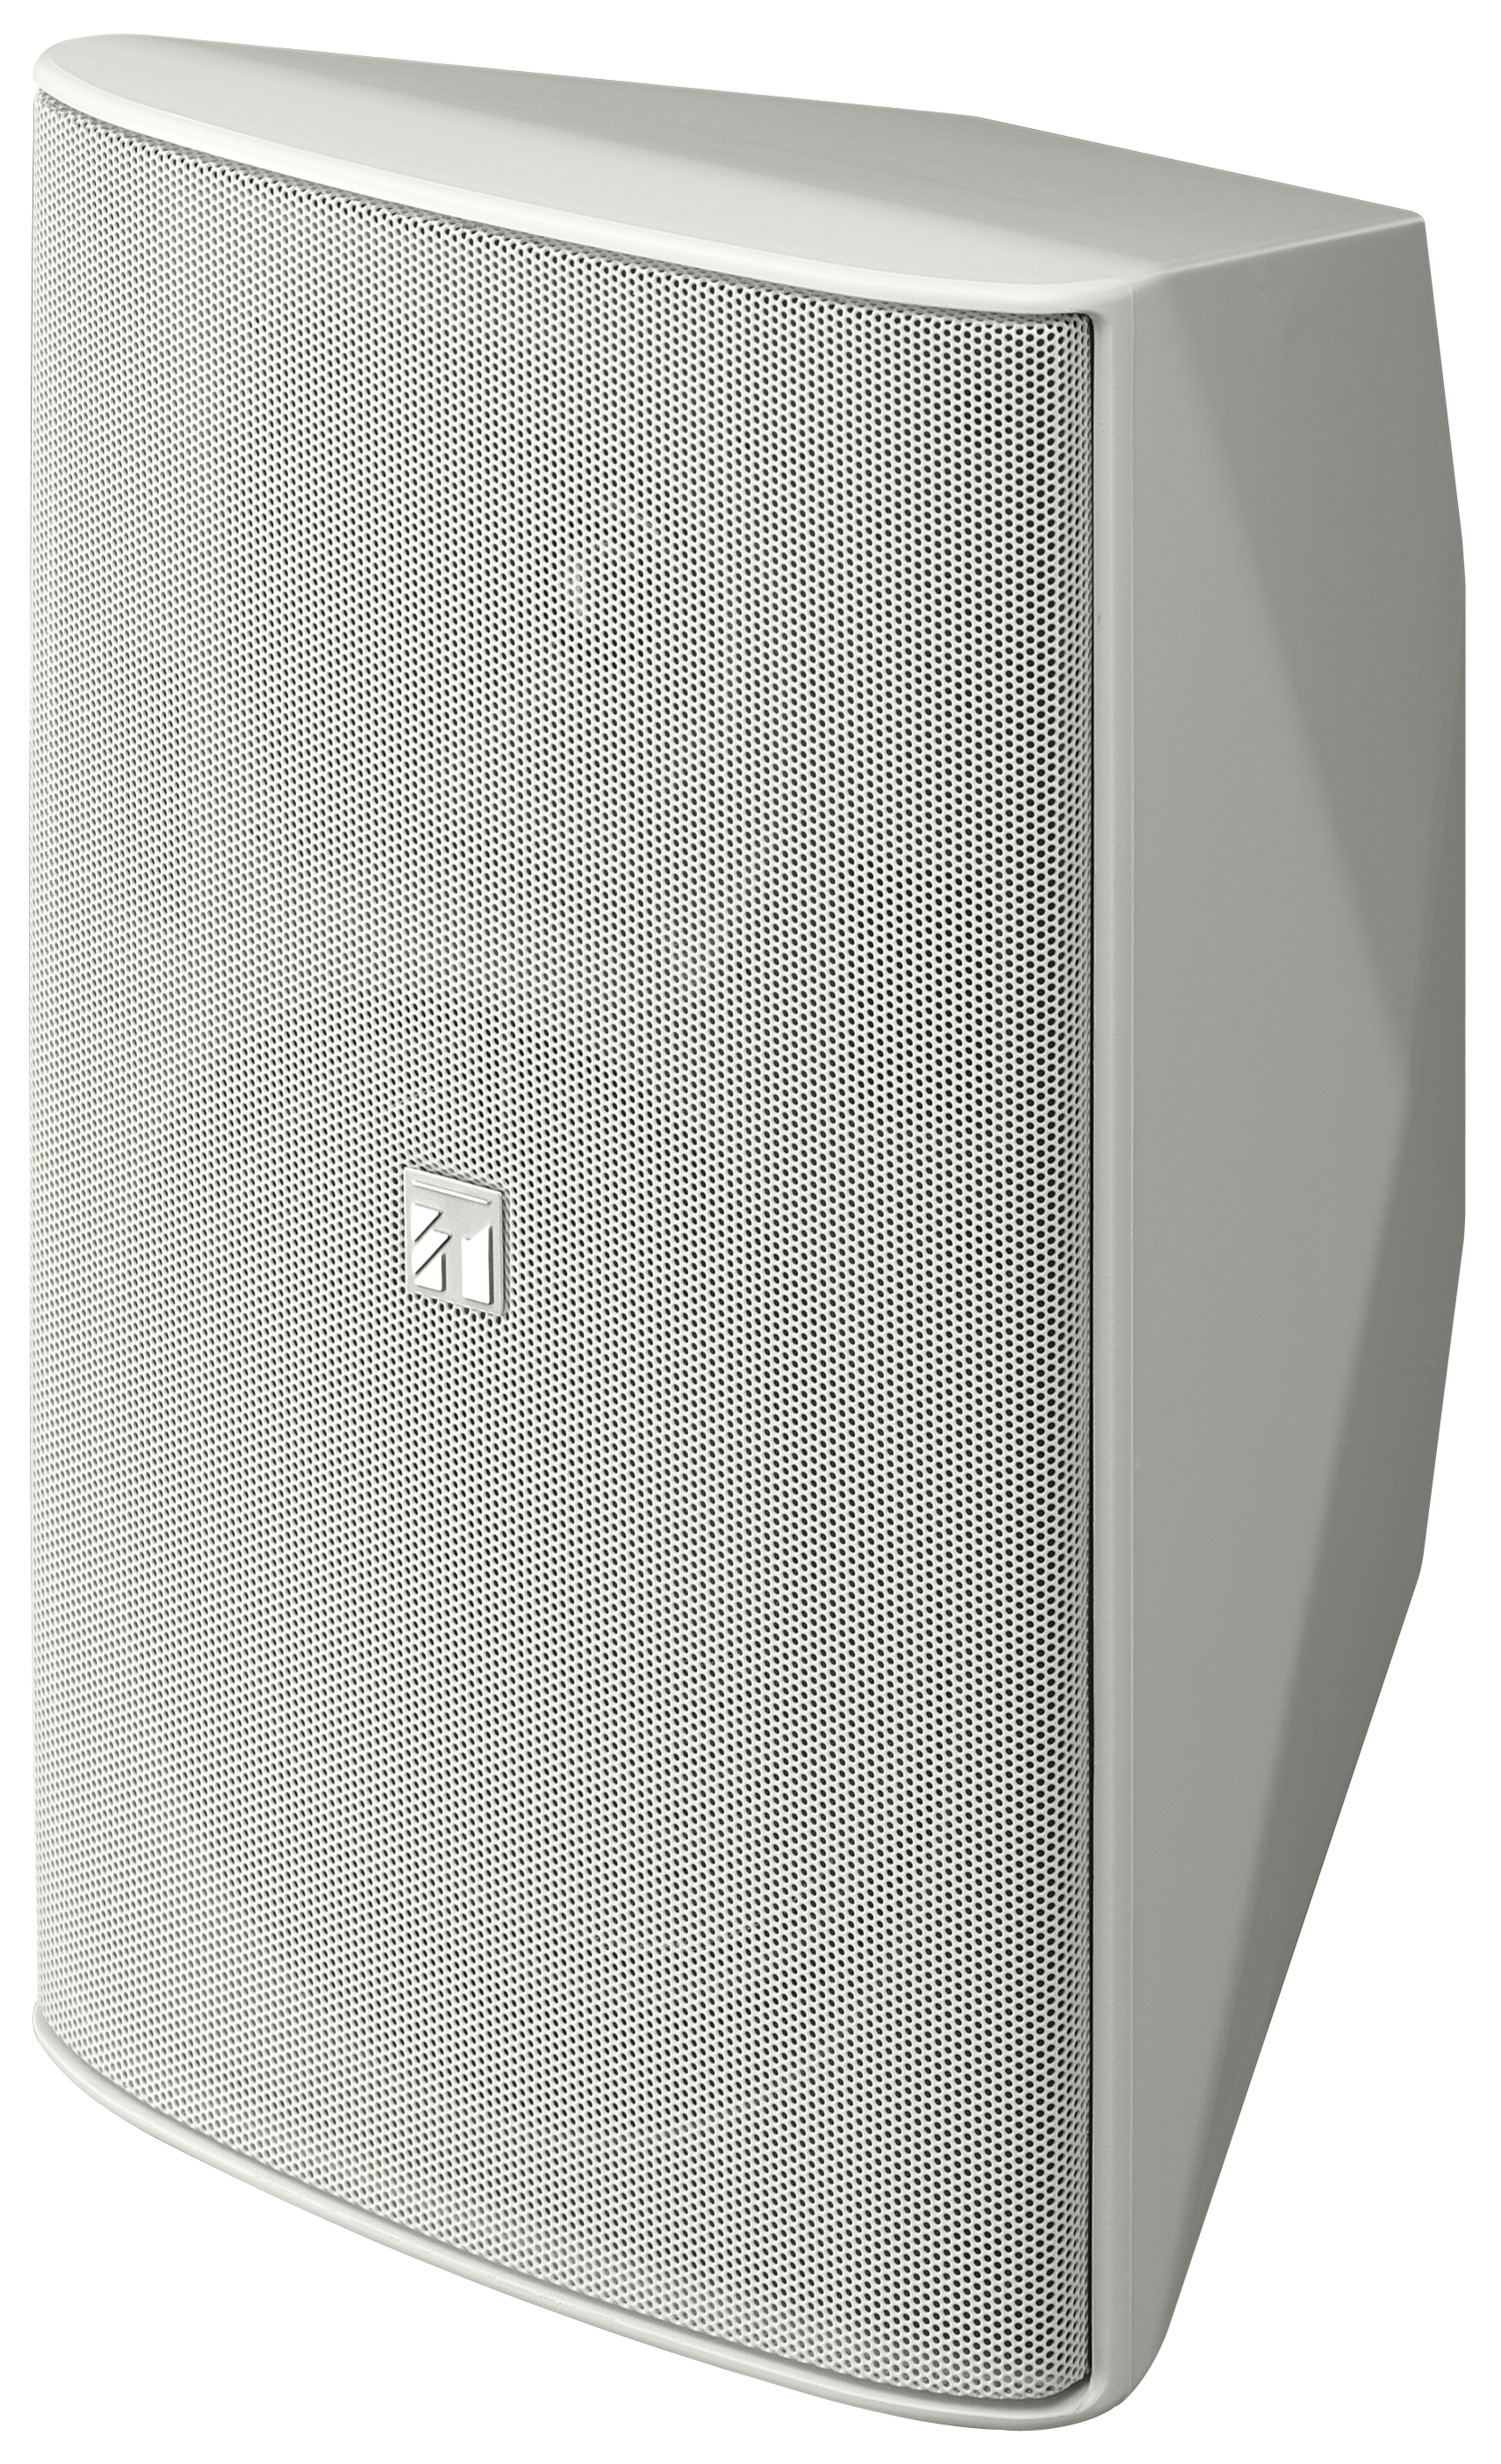 F-2000WT Wide-dispersion Speaker System